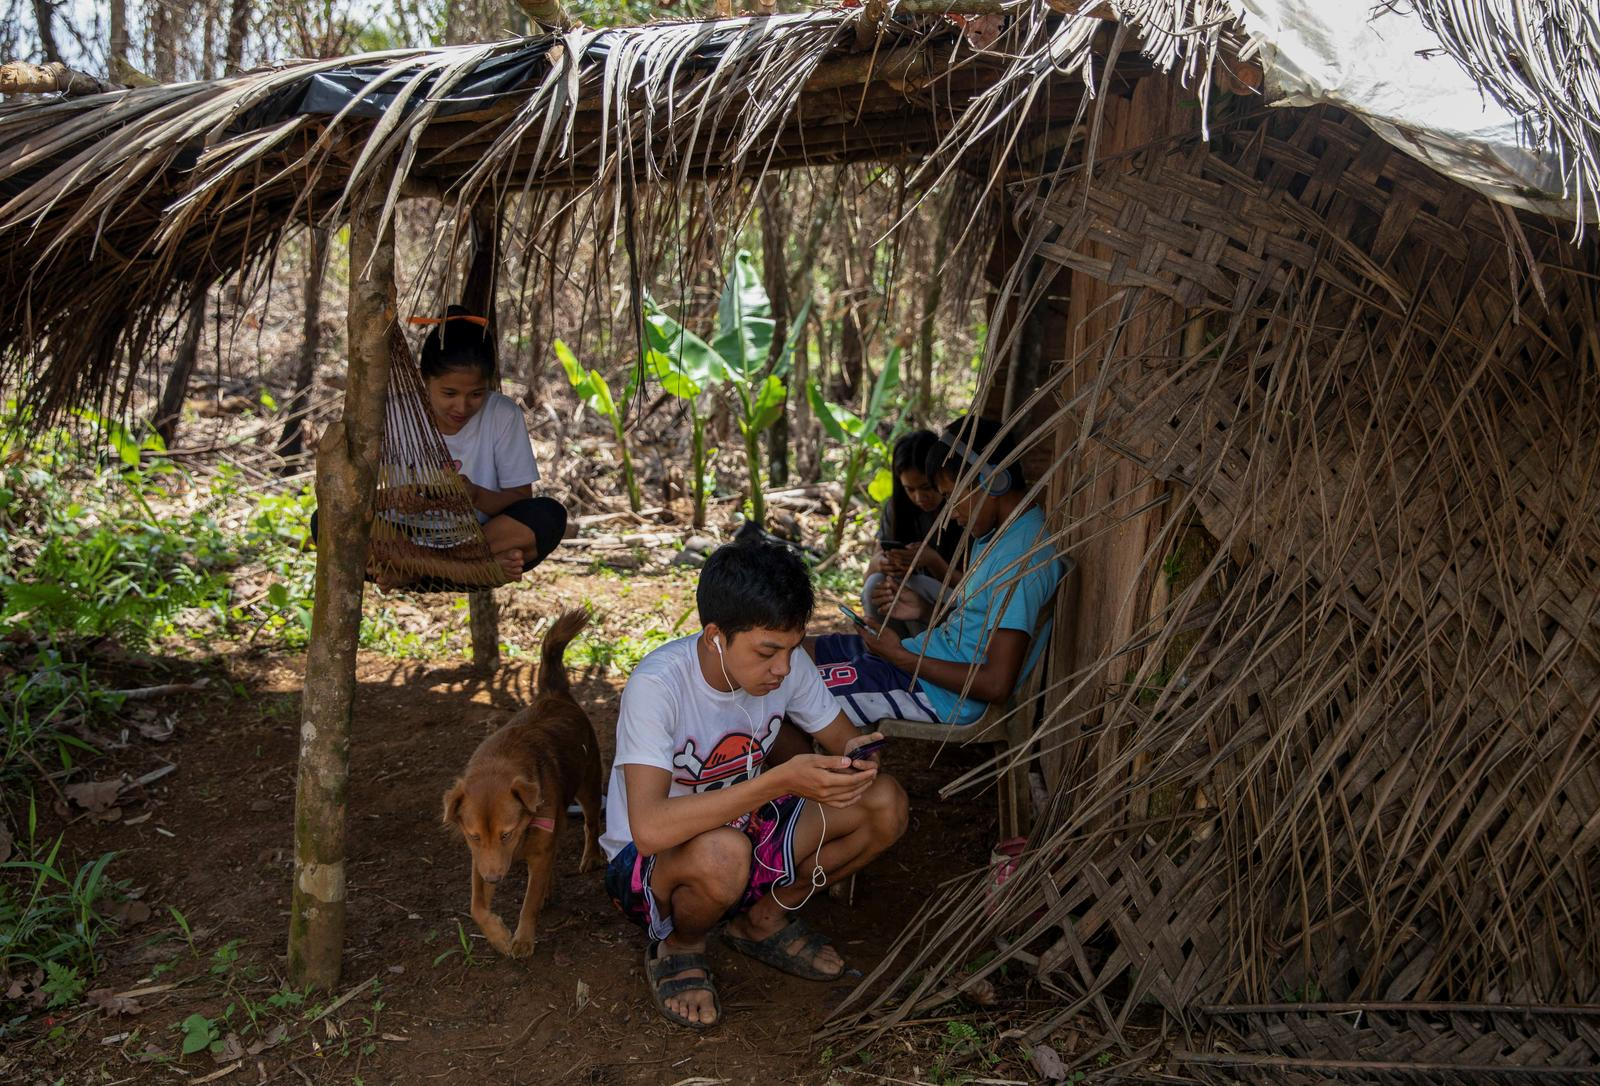 College students Jenebyl Cipres, 19, Almer Acuno, 21, Jester Rafon, 20, and Rosemine Gonzaga, 19, work on online worksheets in a hut on a mountain, as their community does not have enough signal for internet connection, following the suspension of physical classes during the coronavirus disease (COVID-19) outbreak, in Sitio Papatahan, Paete, Laguna, Philippines, October 22, 2020. 'I always fear I wouldn't be able to follow along to our lessons compared to my classmates who are in a better situation, in a more comfortable environment. I'm not jealous because I'm used to this way of living. I'm just scared to be left behind,' said Rafon. Photo: Reuters